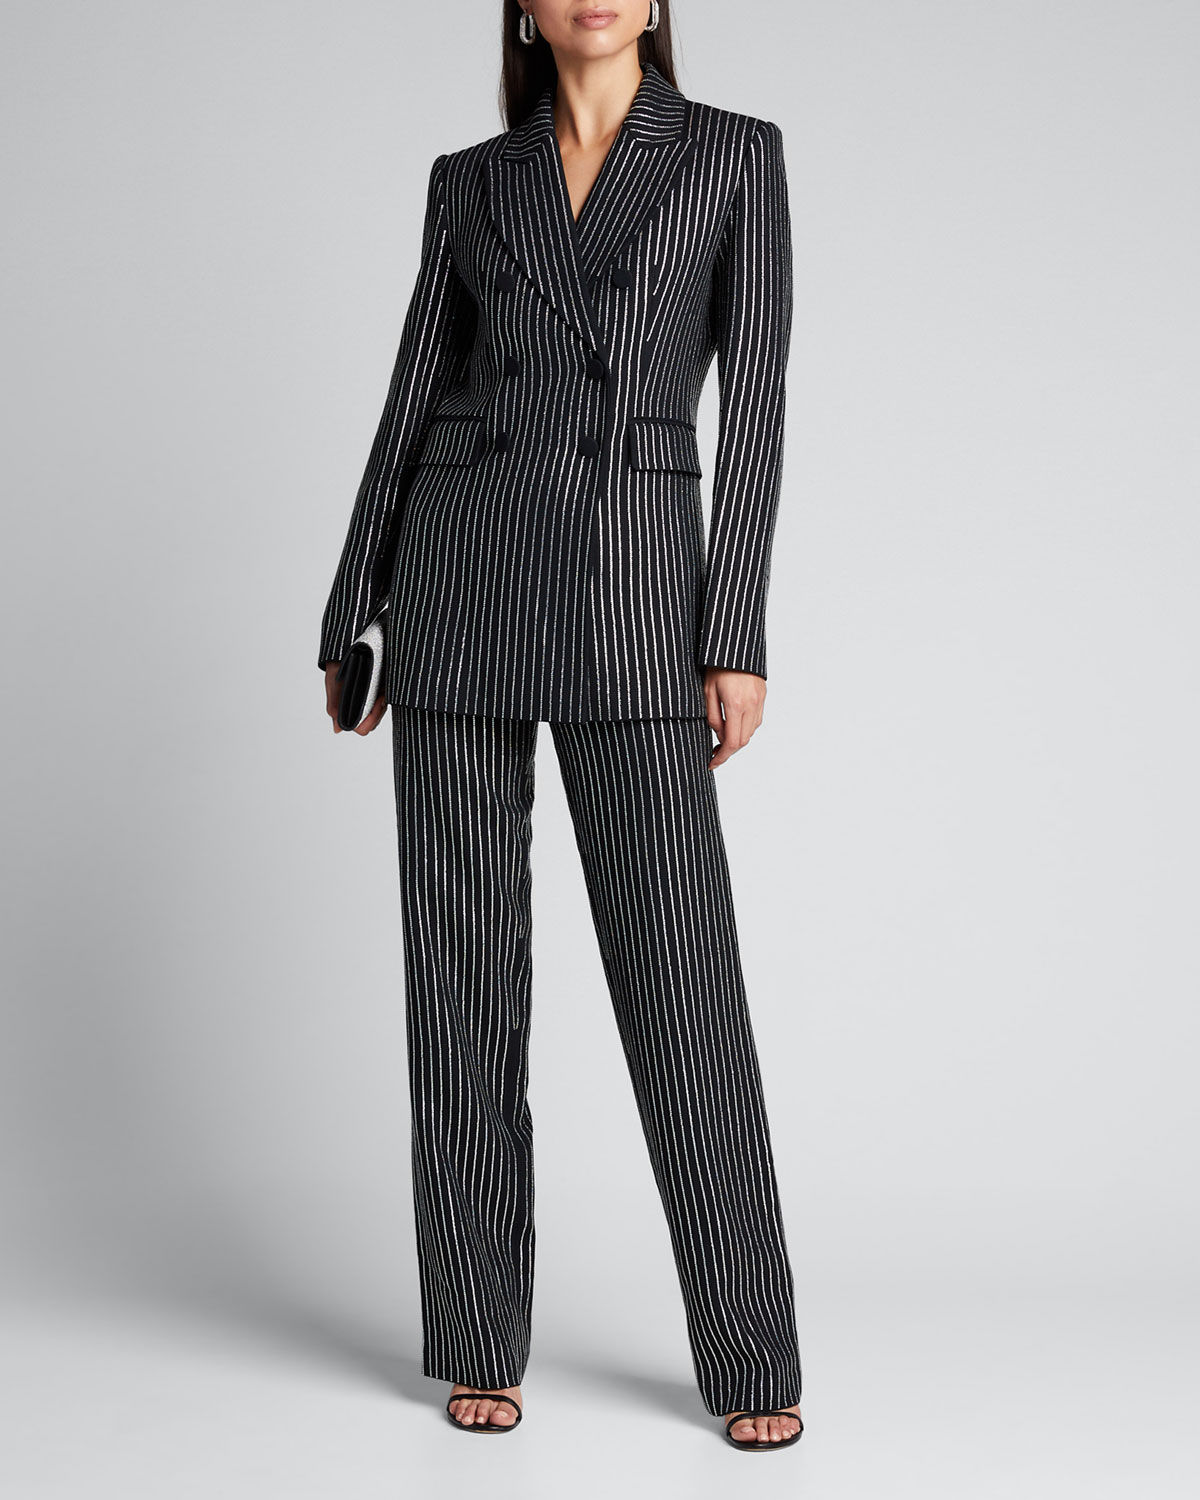 Michael Kors Jackets CRYSTAL PINSTRIPED DOUBLE-BREASTED DINNER JACKET